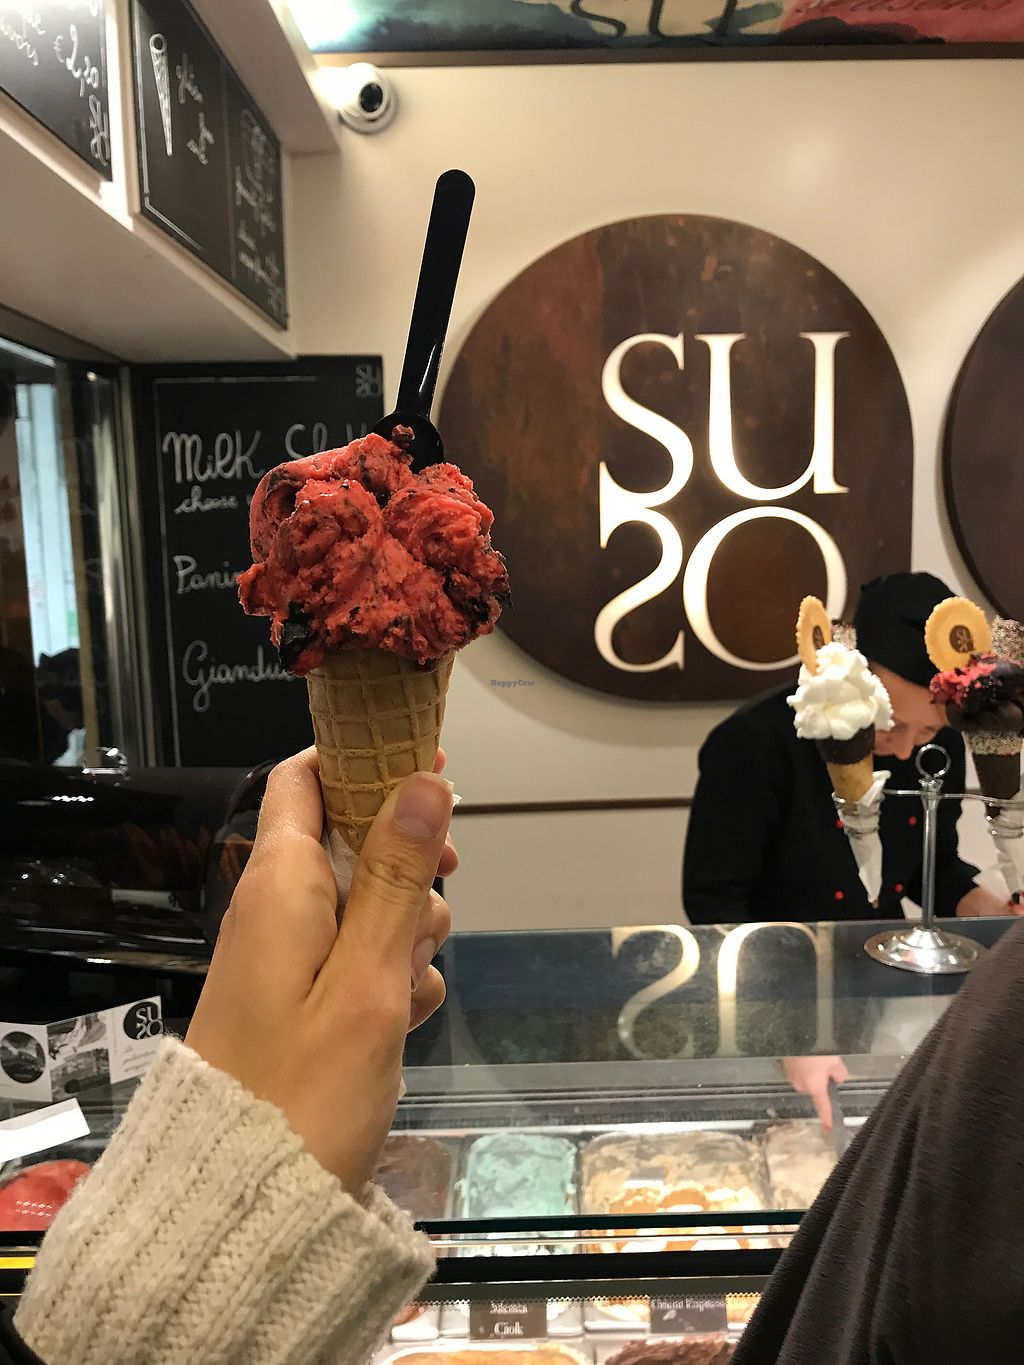 """Photo of Gelatoteca SuSo  by <a href=""""/members/profile/kherrmann"""">kherrmann</a> <br/>Raspberry and dark chocolate flavor <br/> November 11, 2017  - <a href='/contact/abuse/image/56920/324330'>Report</a>"""